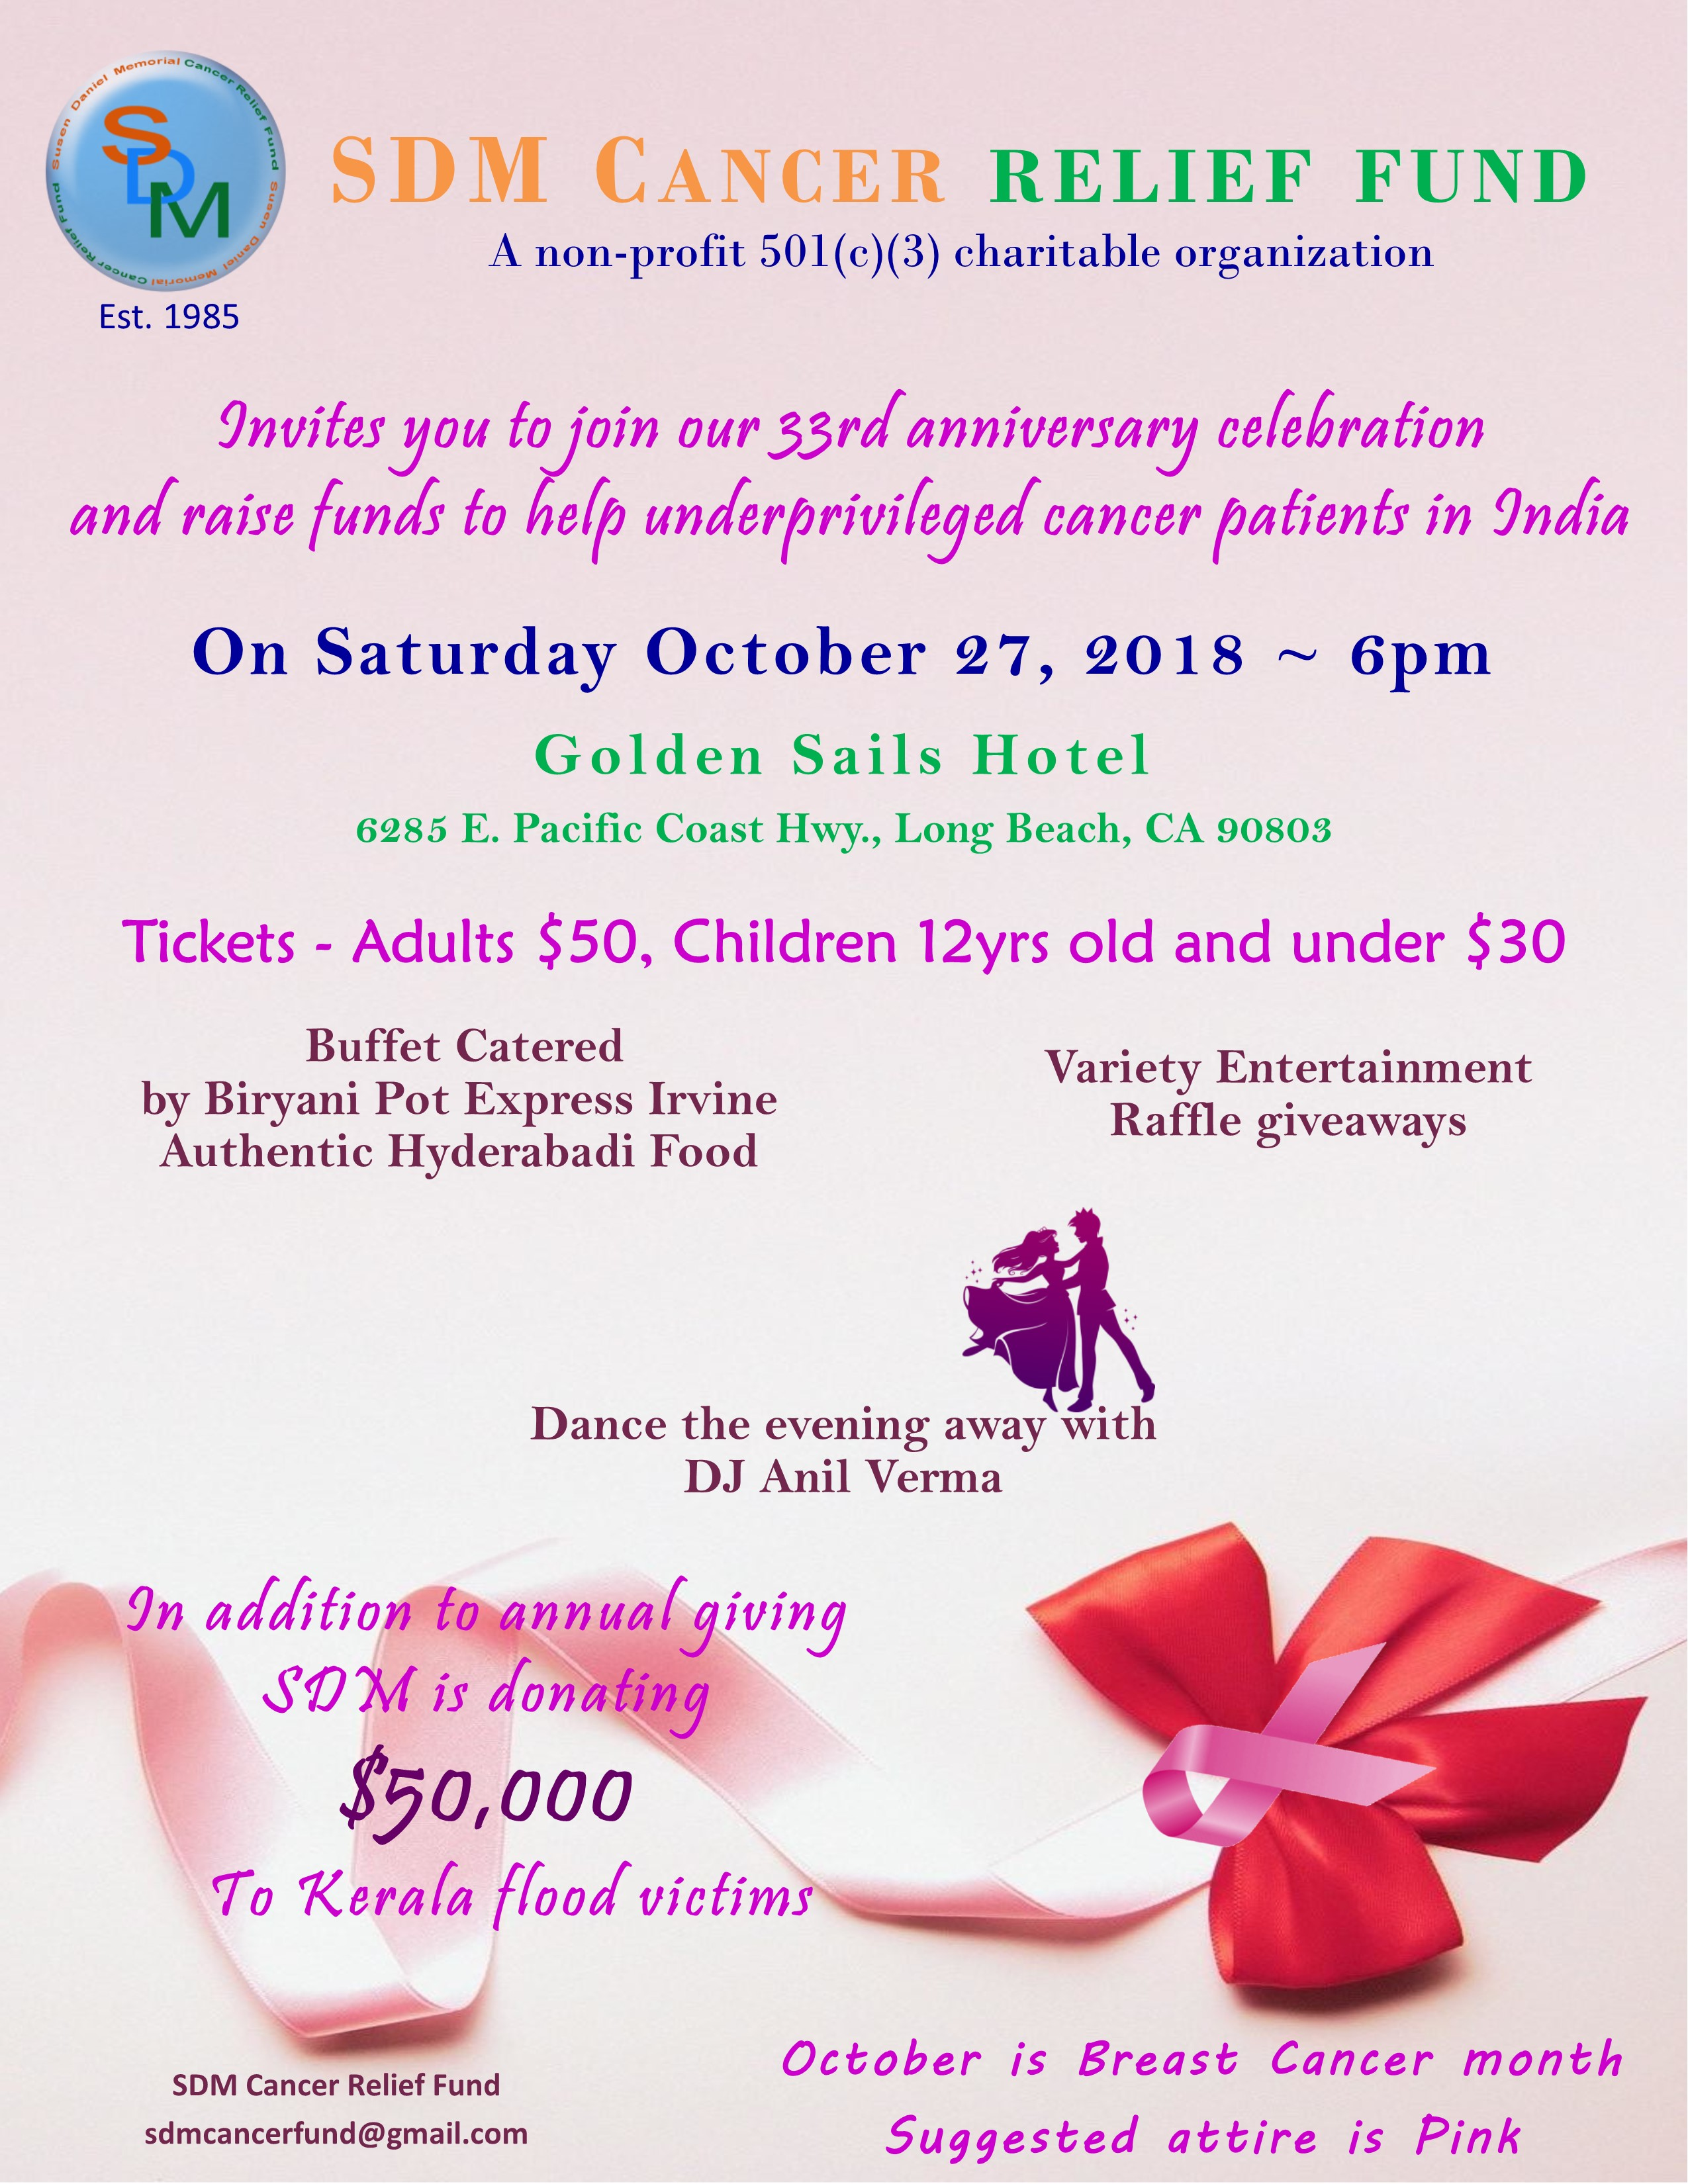 SDM Cancer Relief Fund - 33rd Annual Fundraising Banquet